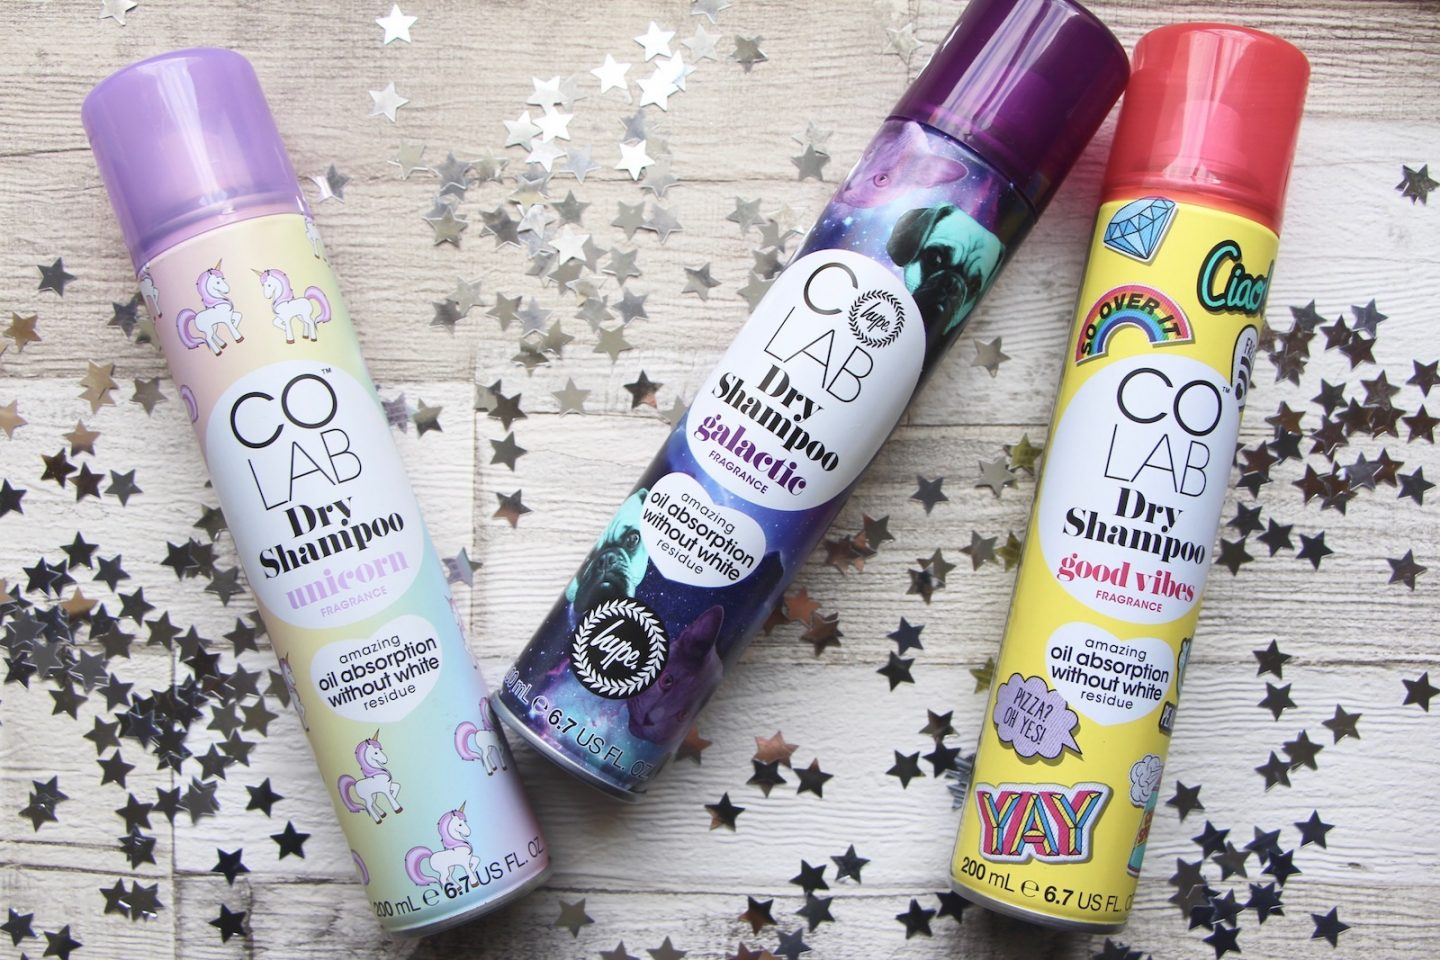 colab dry shampoo at boots